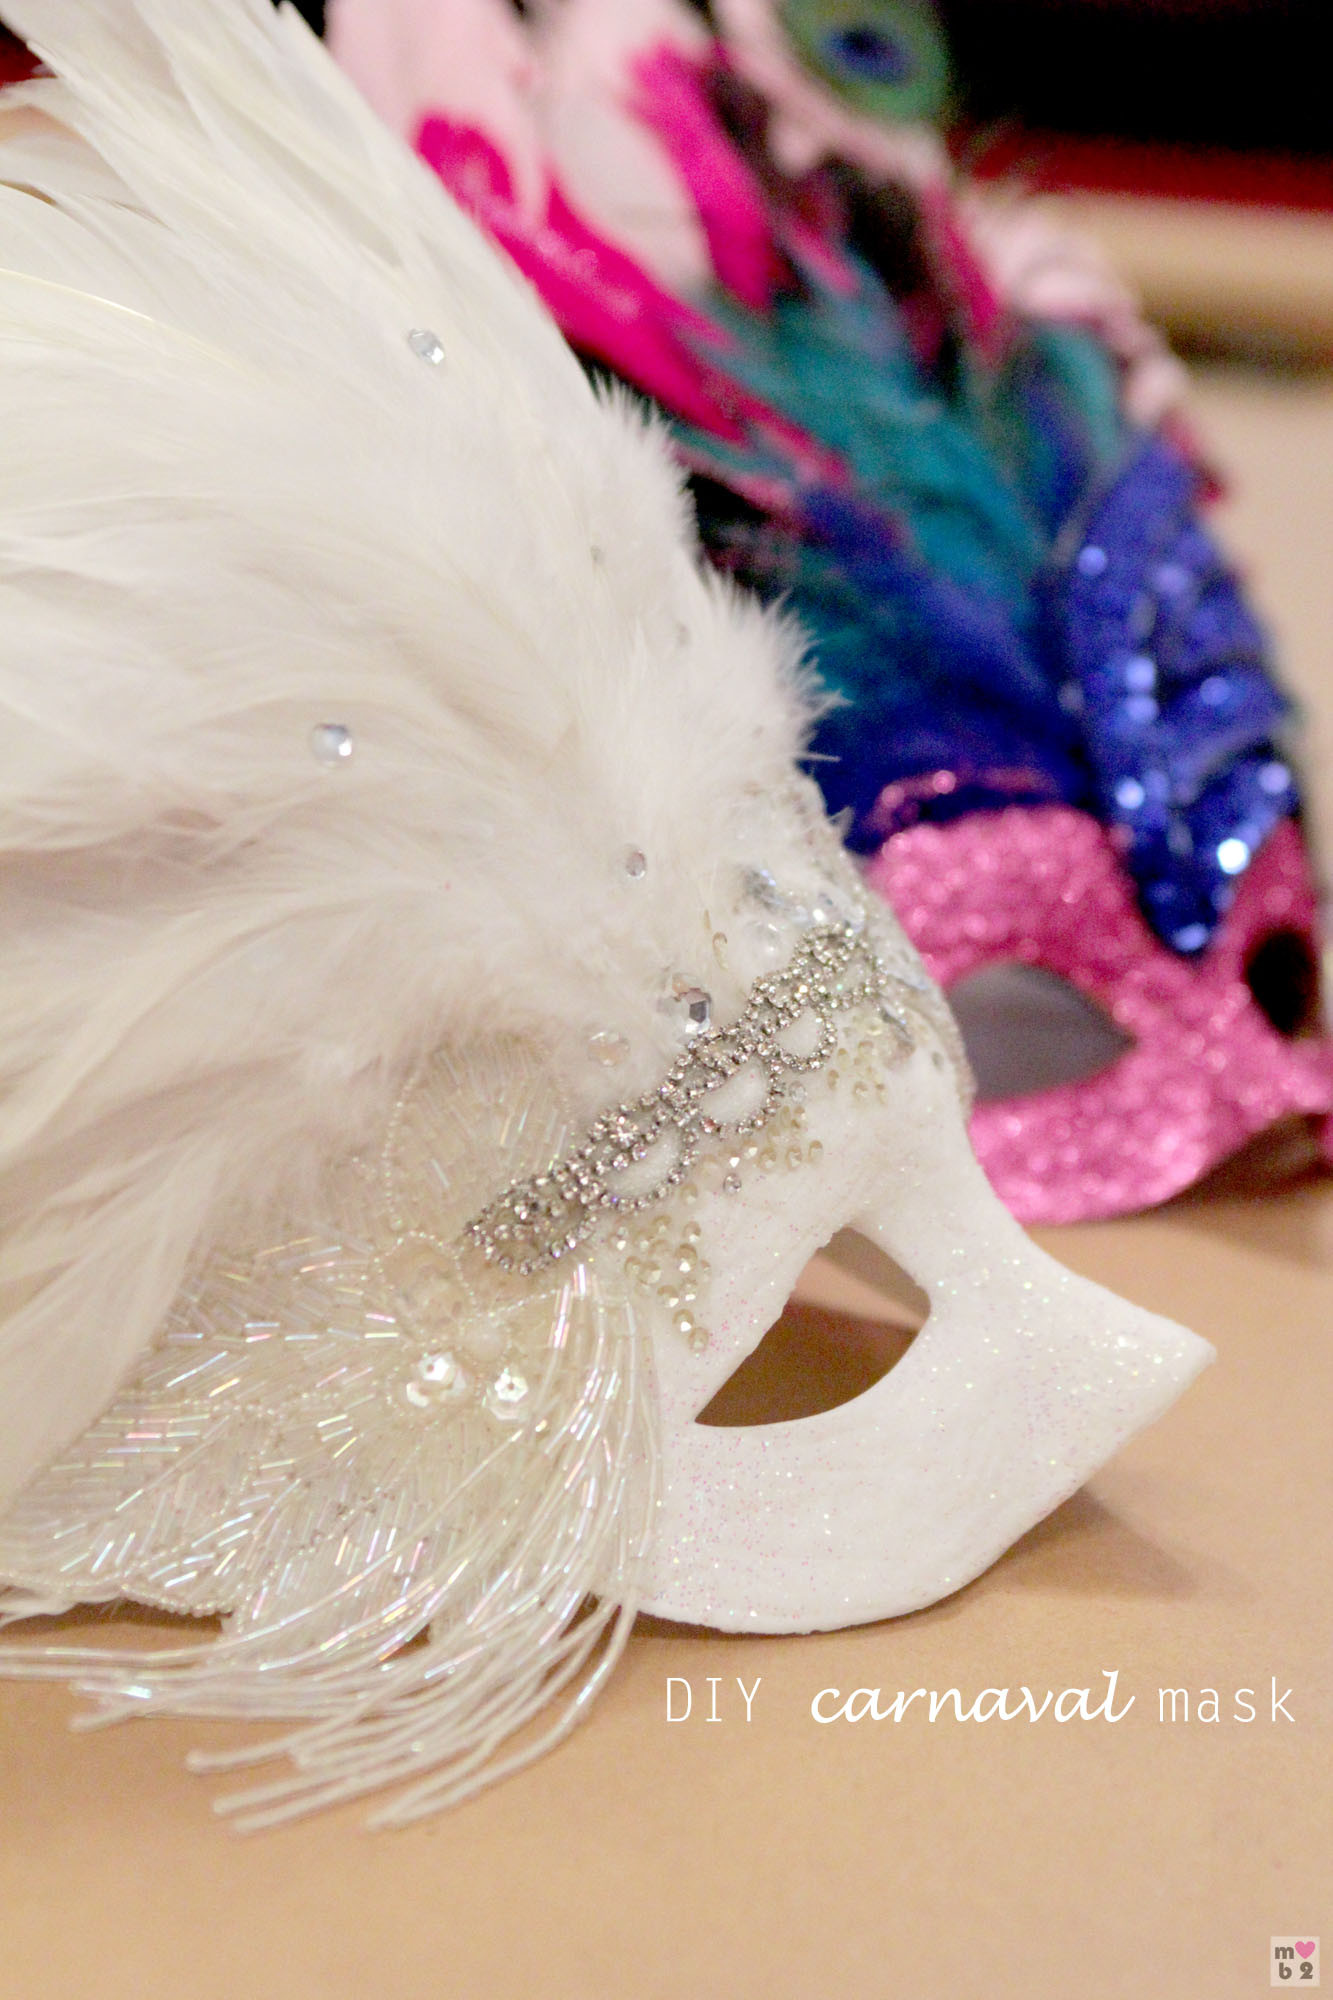 Best ideas about Masquerade Masks DIY . Save or Pin DIY Carnaval Mask Now.